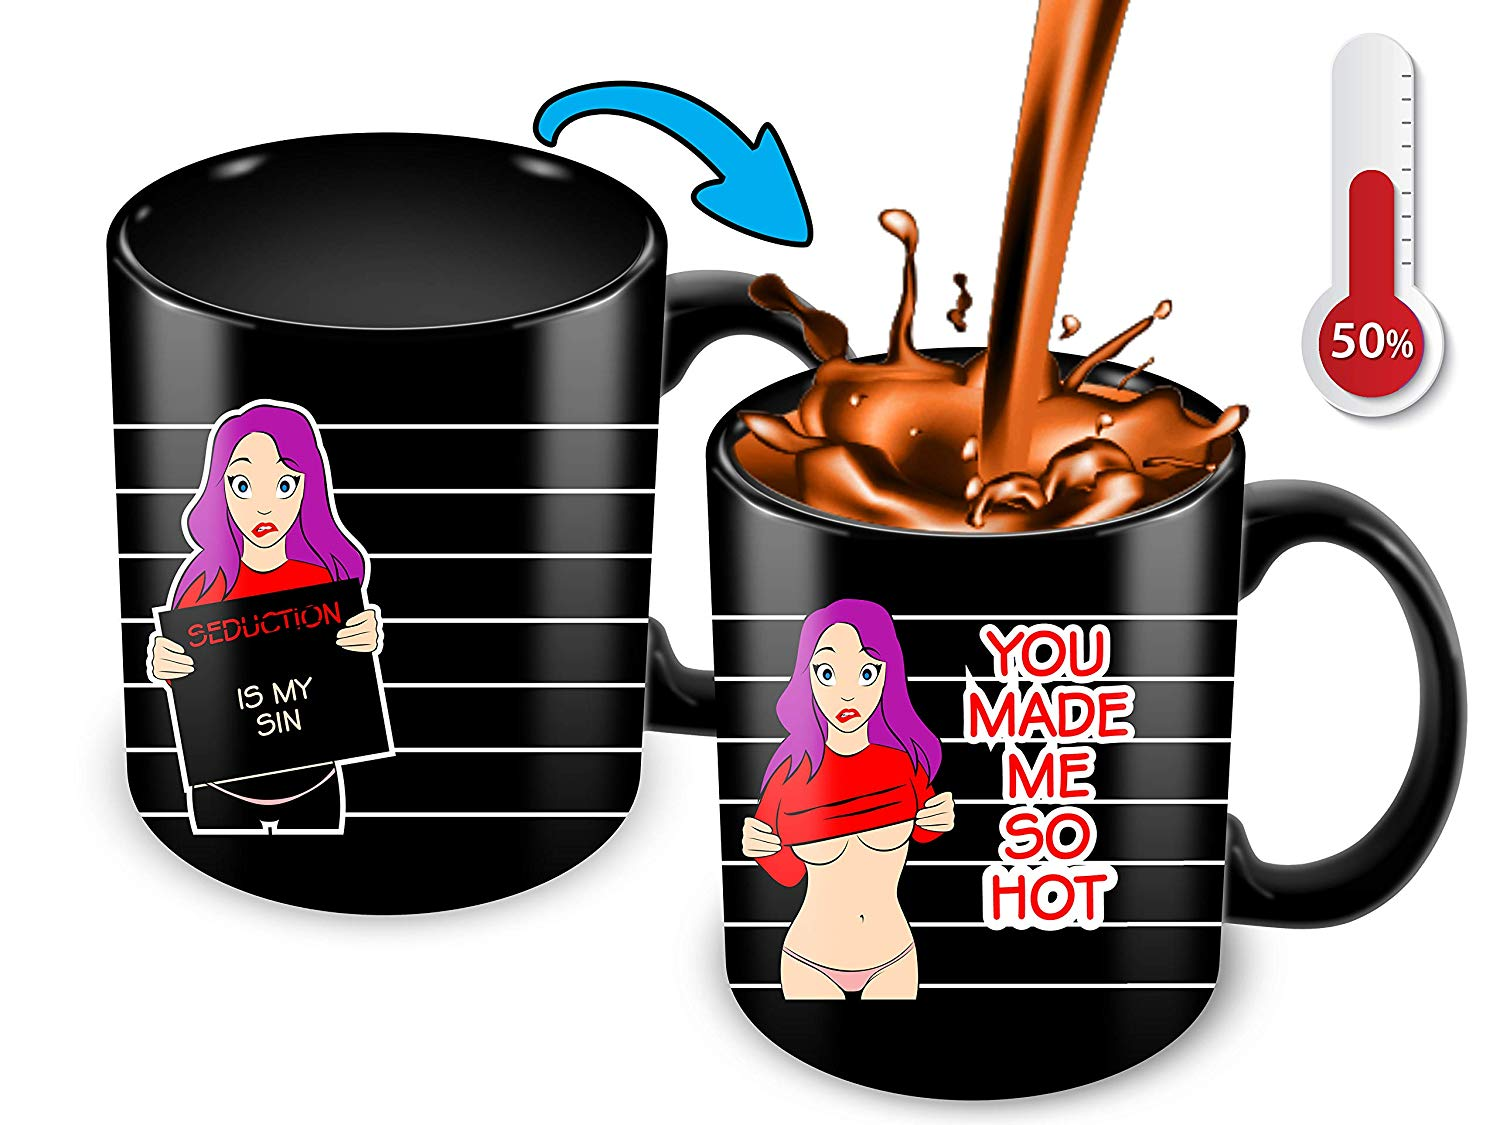 Heat Sensitive Color Changing Coffee Mug Funny Coffee Cup Hot Girl Design Funny Gift Idea B07D21CPTQ